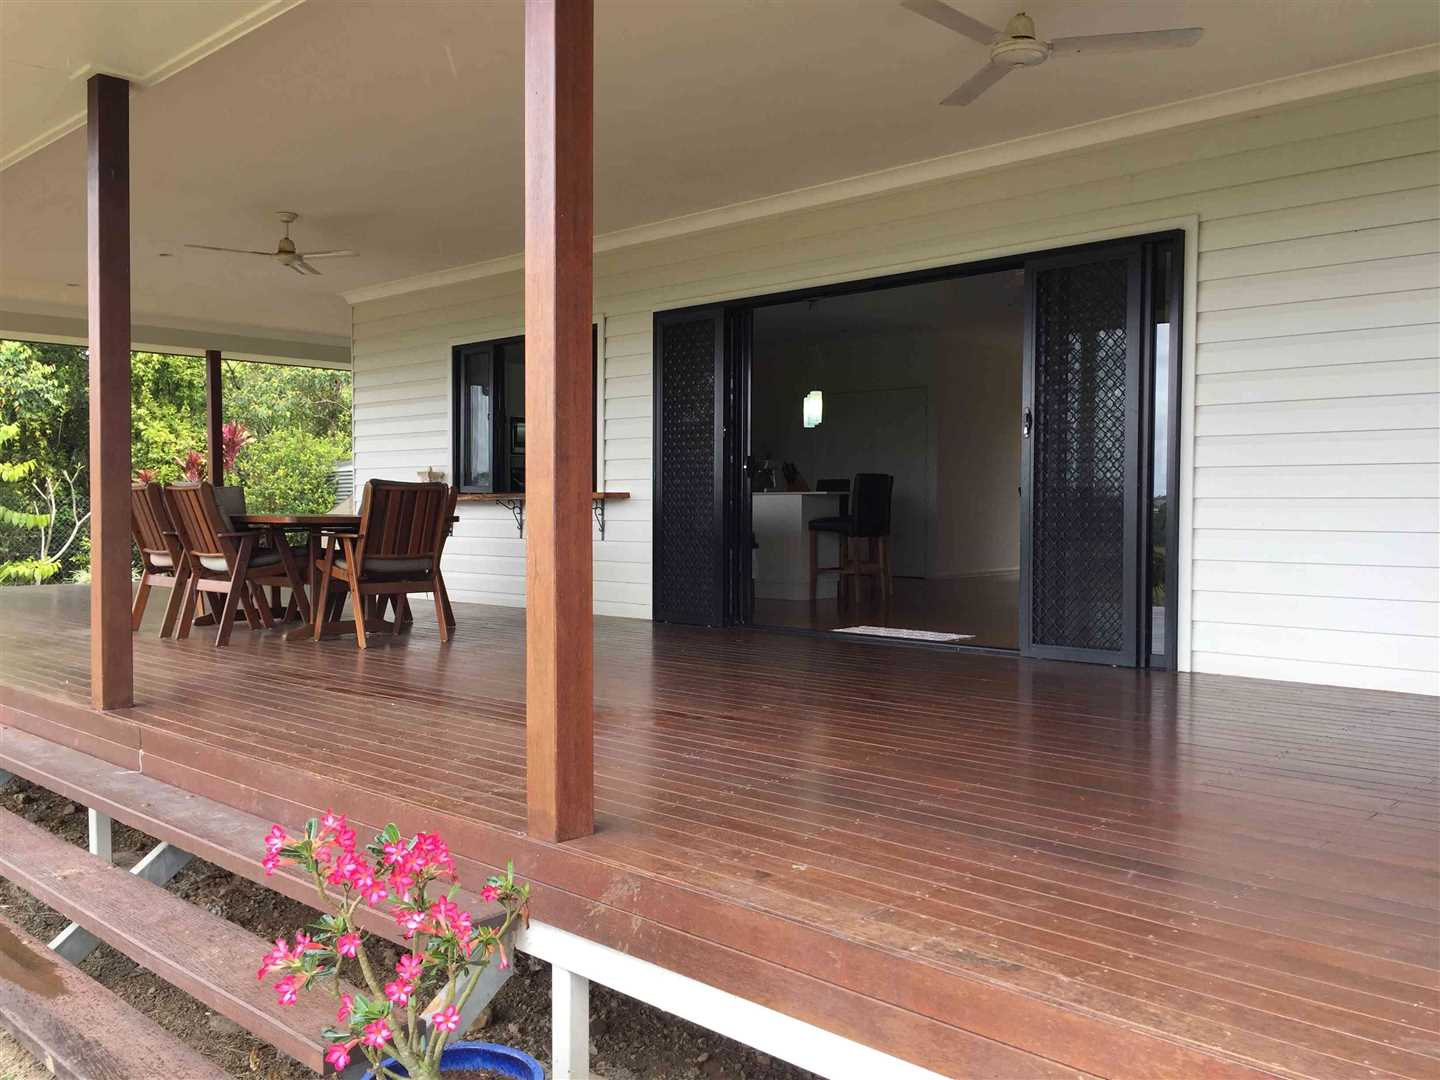 View of part of home verandah, photo 1